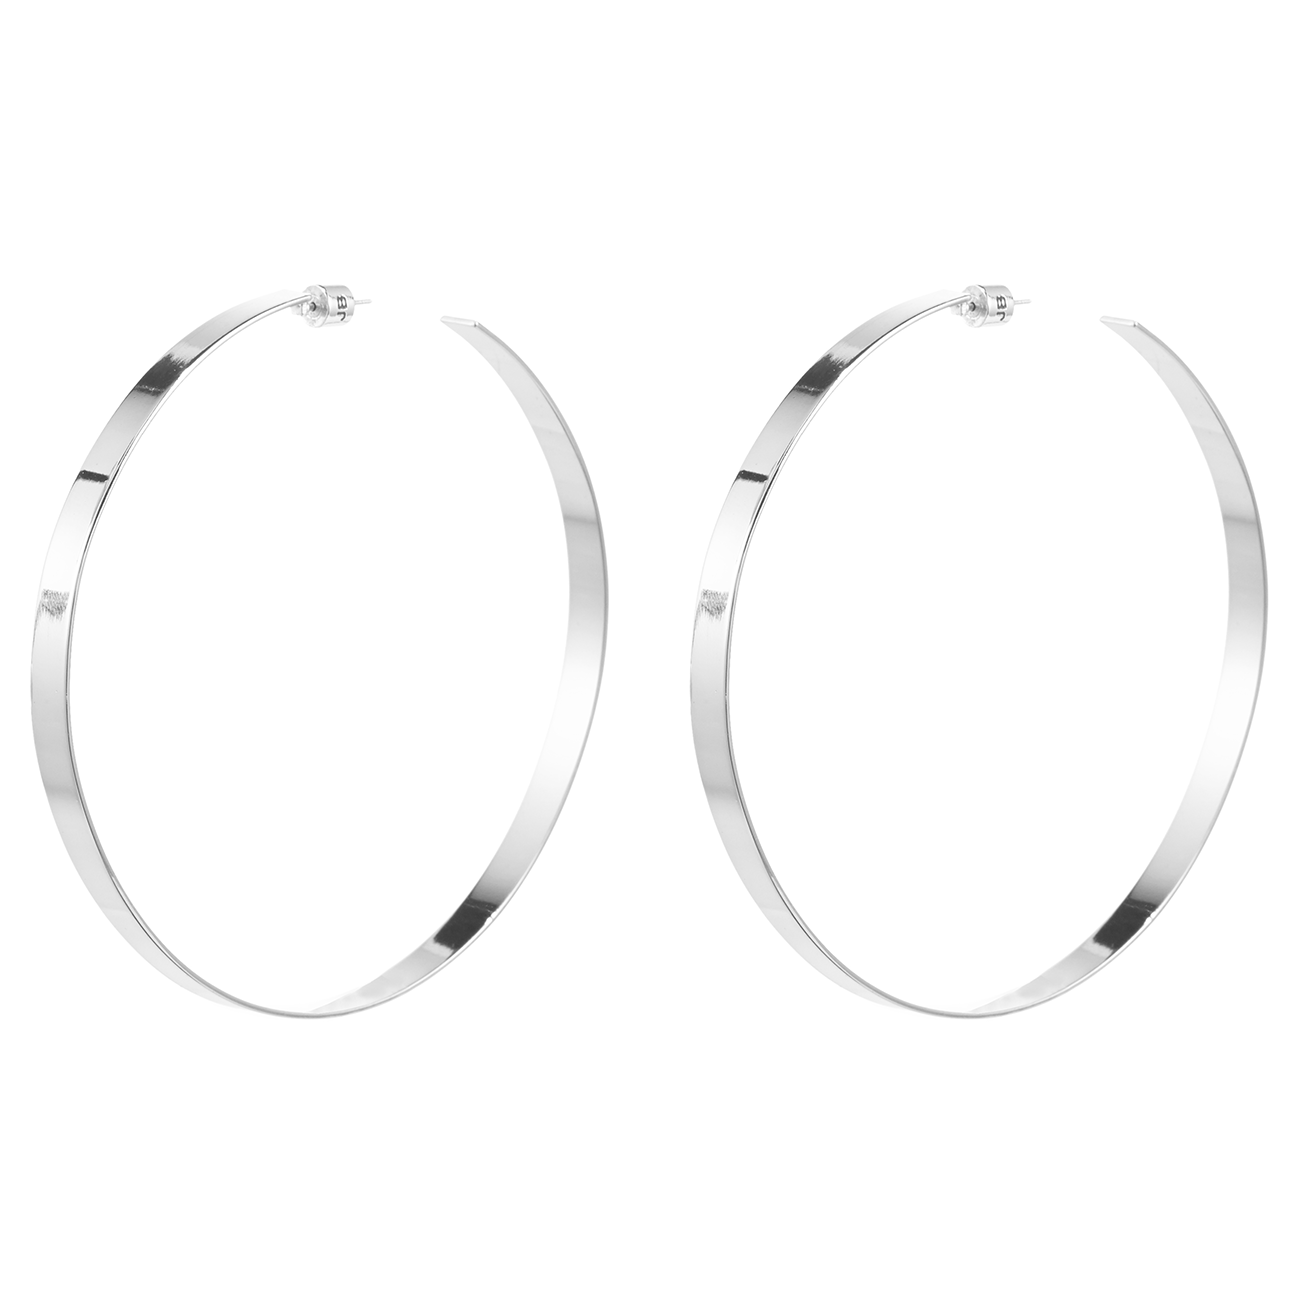 Silver wide hoop Crista Cober Hoops earrings by Jenny Bird